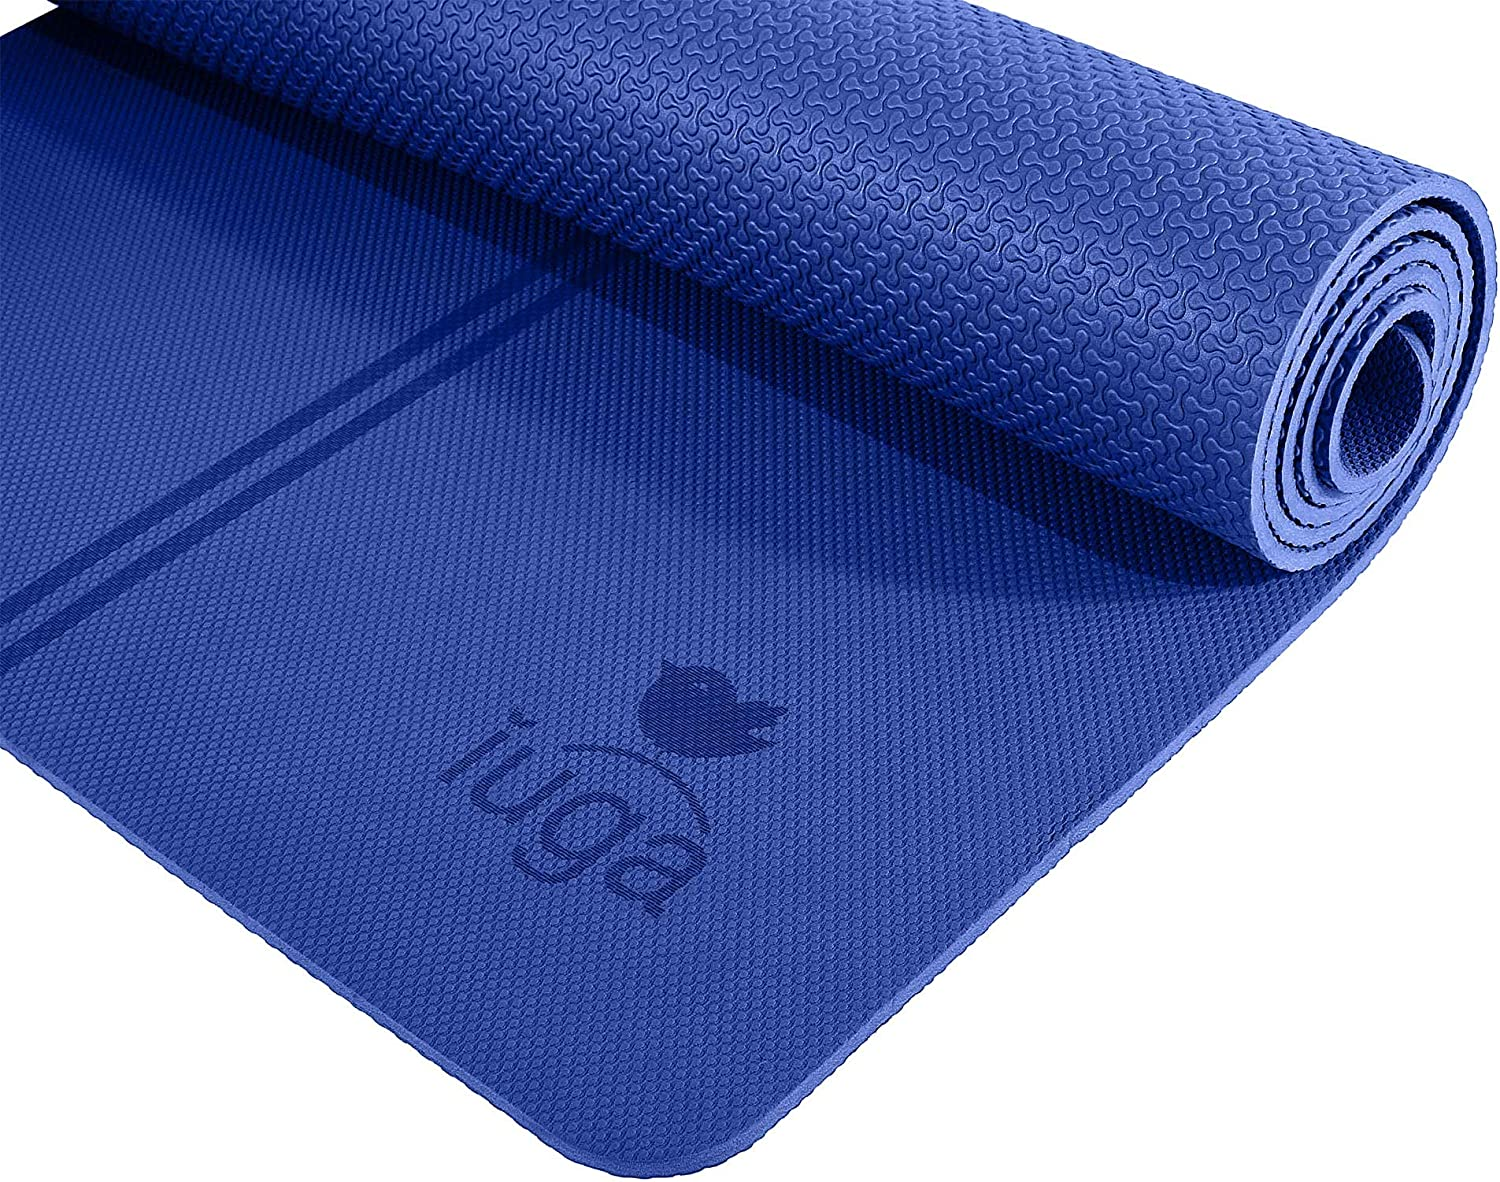 IUGA Eco Friendly Yoga Mat with Alignment Lines, Free Carry Strap, Non Slip TPE Yoga Mat for All Types of Yoga, Extra Large Exercise and Fitness Mat ...